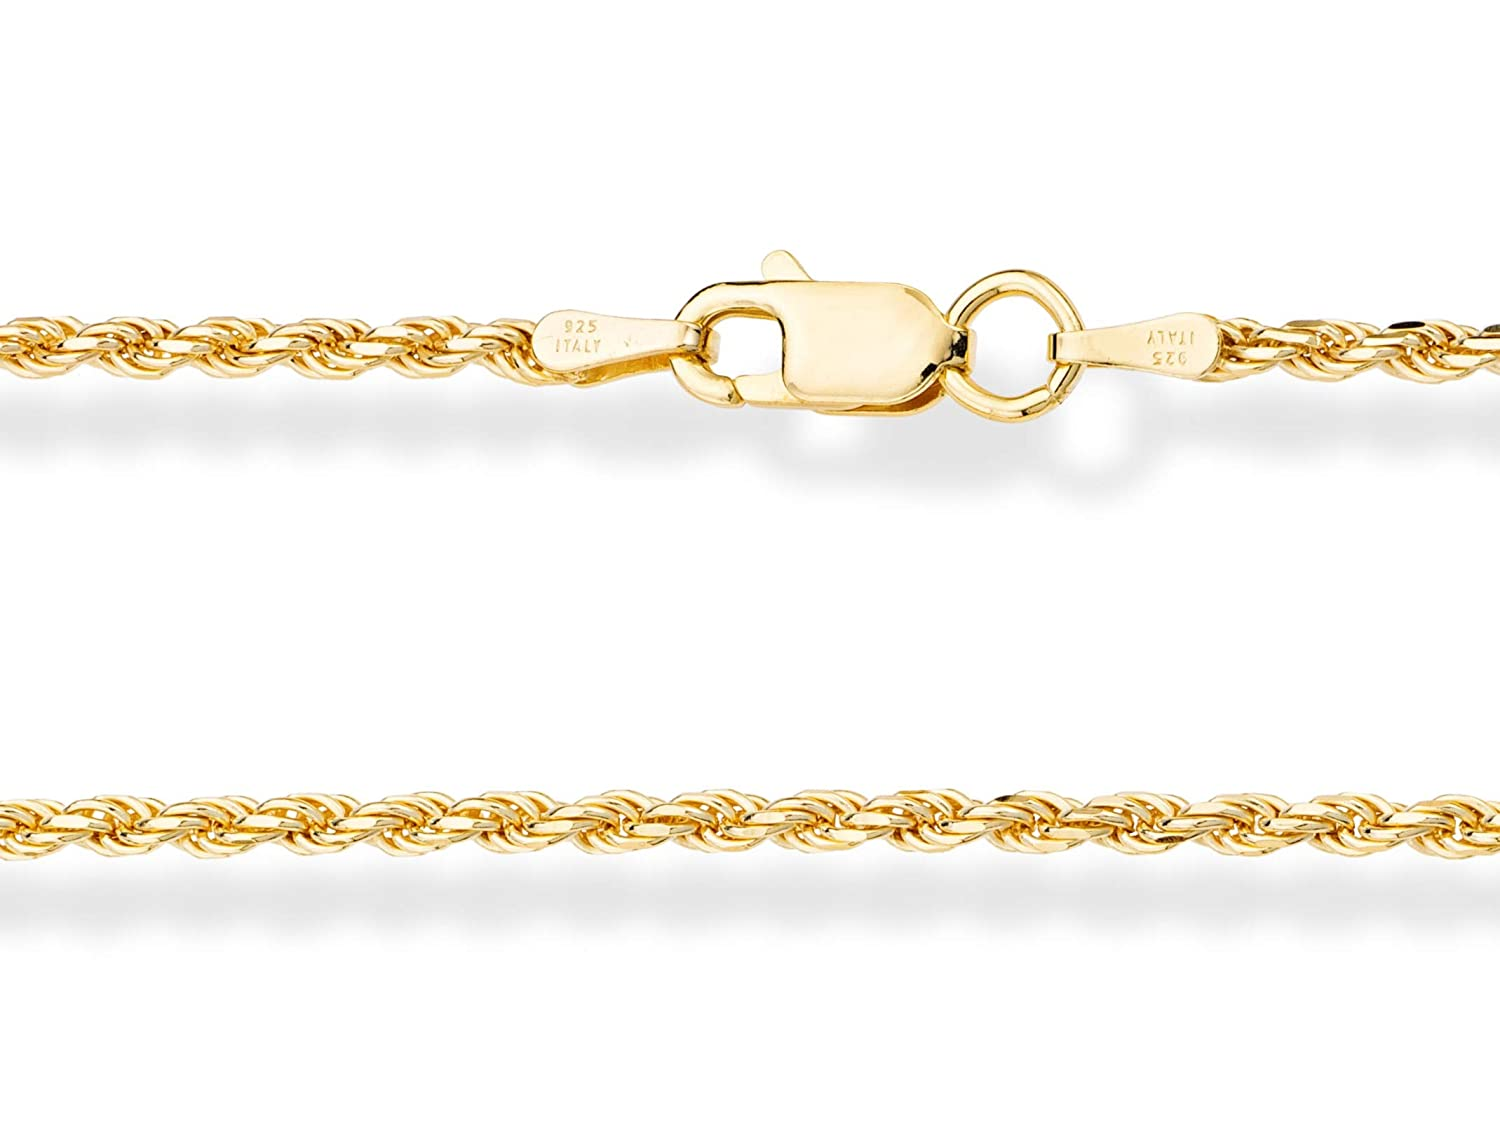 MiaBella 18K Gold Over Sterling Silver Italian 2mm Solid Diamond-Cut  Braided Rope Chain Necklace Anklet Bracelet for Men Women 925 Italy 6 5, 7,  7 5,